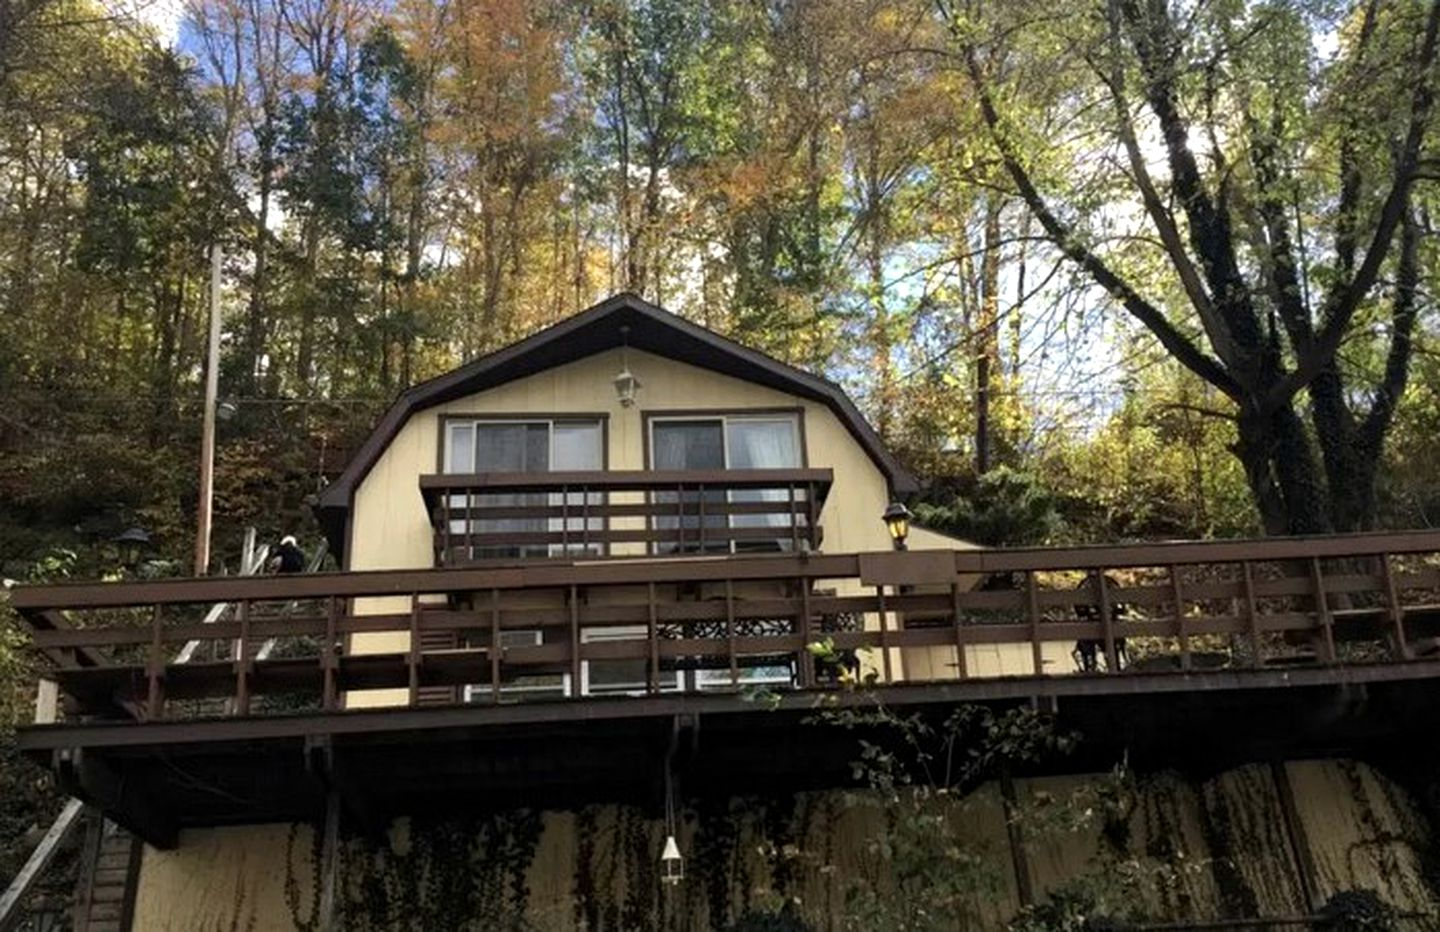 One of the best cabin rentals, Morgantown, WV has to offer for waterfront accommodation